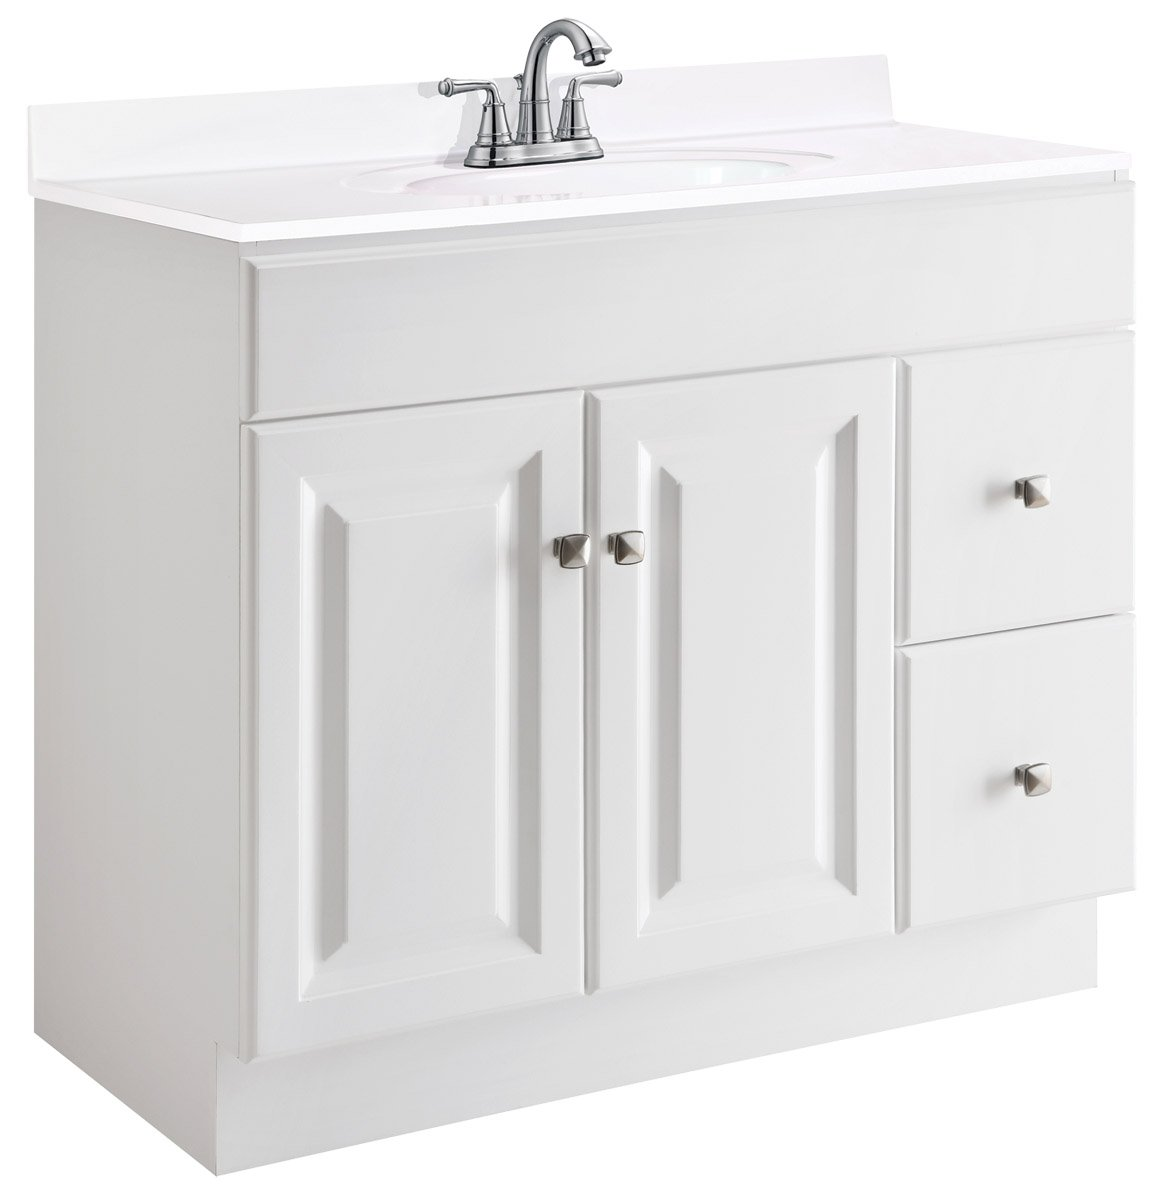 Design House 545095 Wyndham White Semi-Gloss Vanity Cabinet with 2-Doors and 2-Drawers, 36-Inches Wide by 21-Inches Deep by 31.5-Inches Tall - 36 in. W x 21 in. D x 31. 5 in. H Plenty of storage for toiletries to keep your countertop free of clutter Modern construction meshes with subtle vintage details for an elegant addition to your bathroom - bathroom-vanities, bathroom-fixtures-hardware, bathroom - 61am2Mf2L4L -